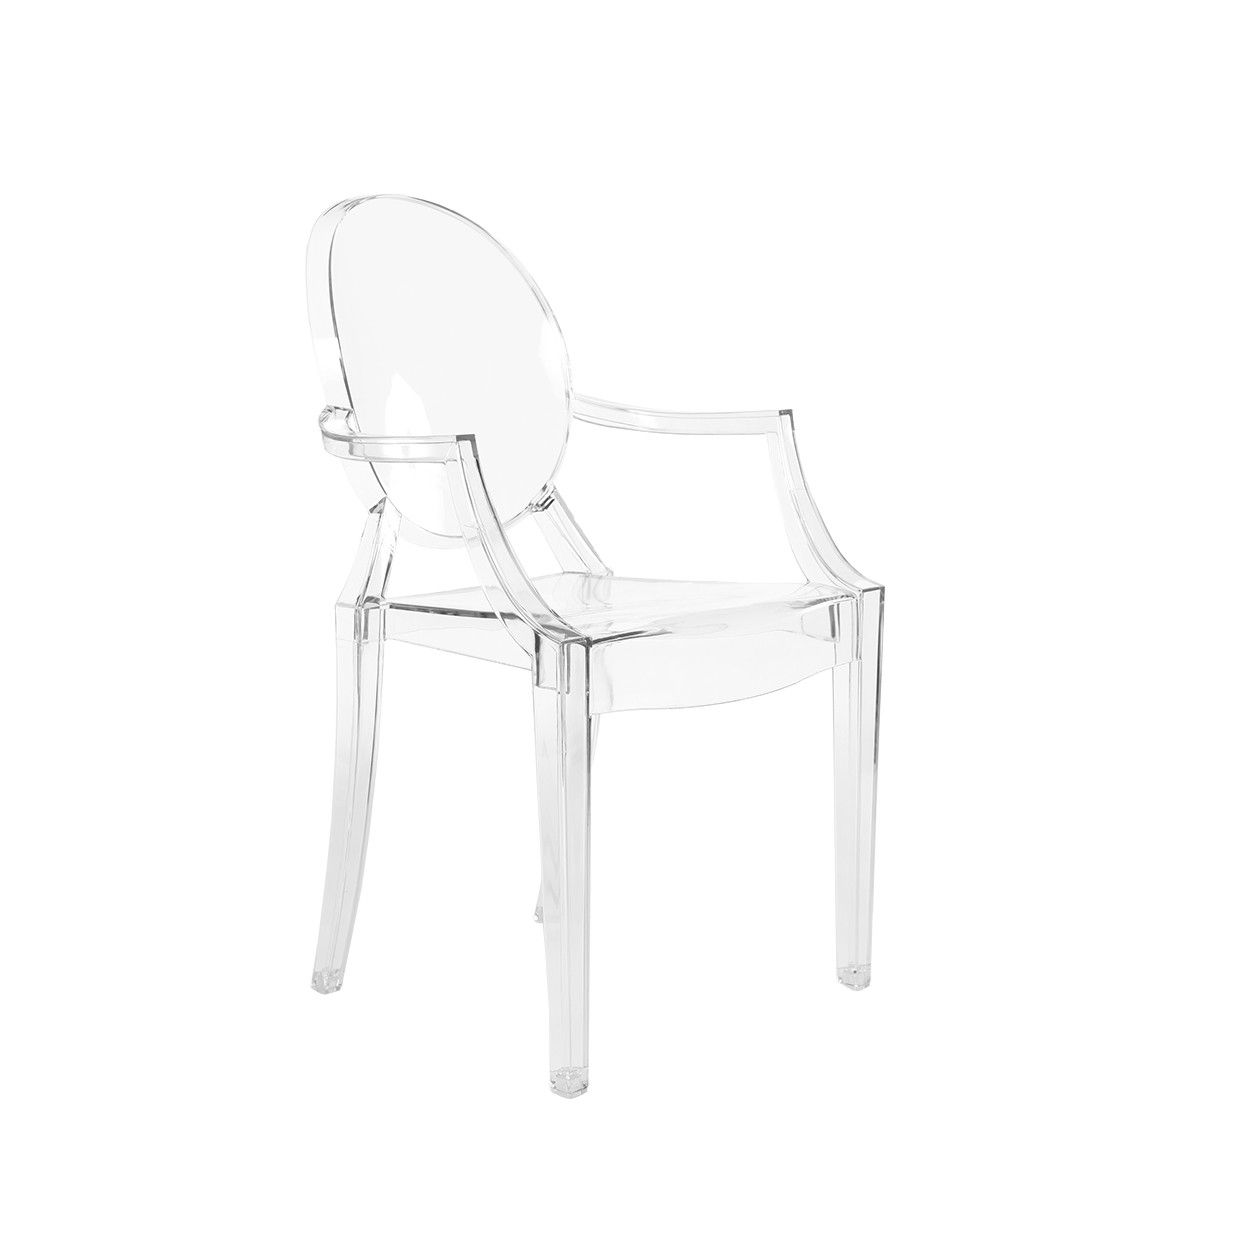 Mid Century Modern Reproduction Louis Ghost Chair Transparent Acrylic Dining Arm Chair Inspired Ghost Chair Louis Ghost Chair Midcentury Modern Dining Chairs